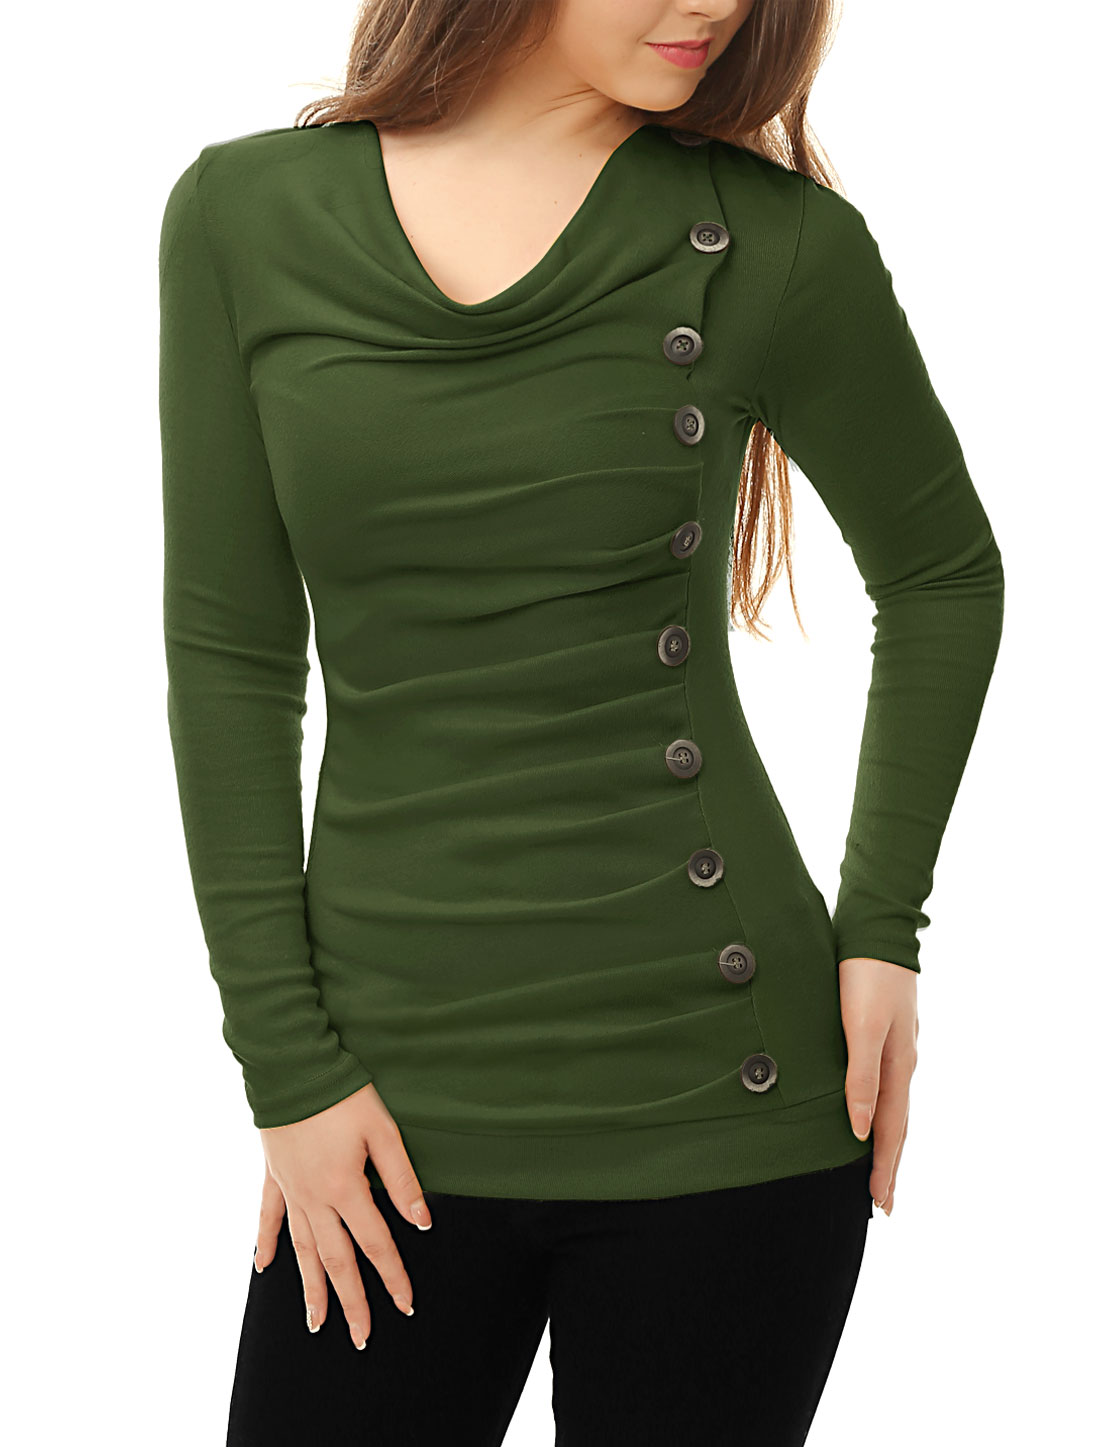 Allegra K Women Cowl Neck Long Sleeves Buttons Decor Ruched Top Green S